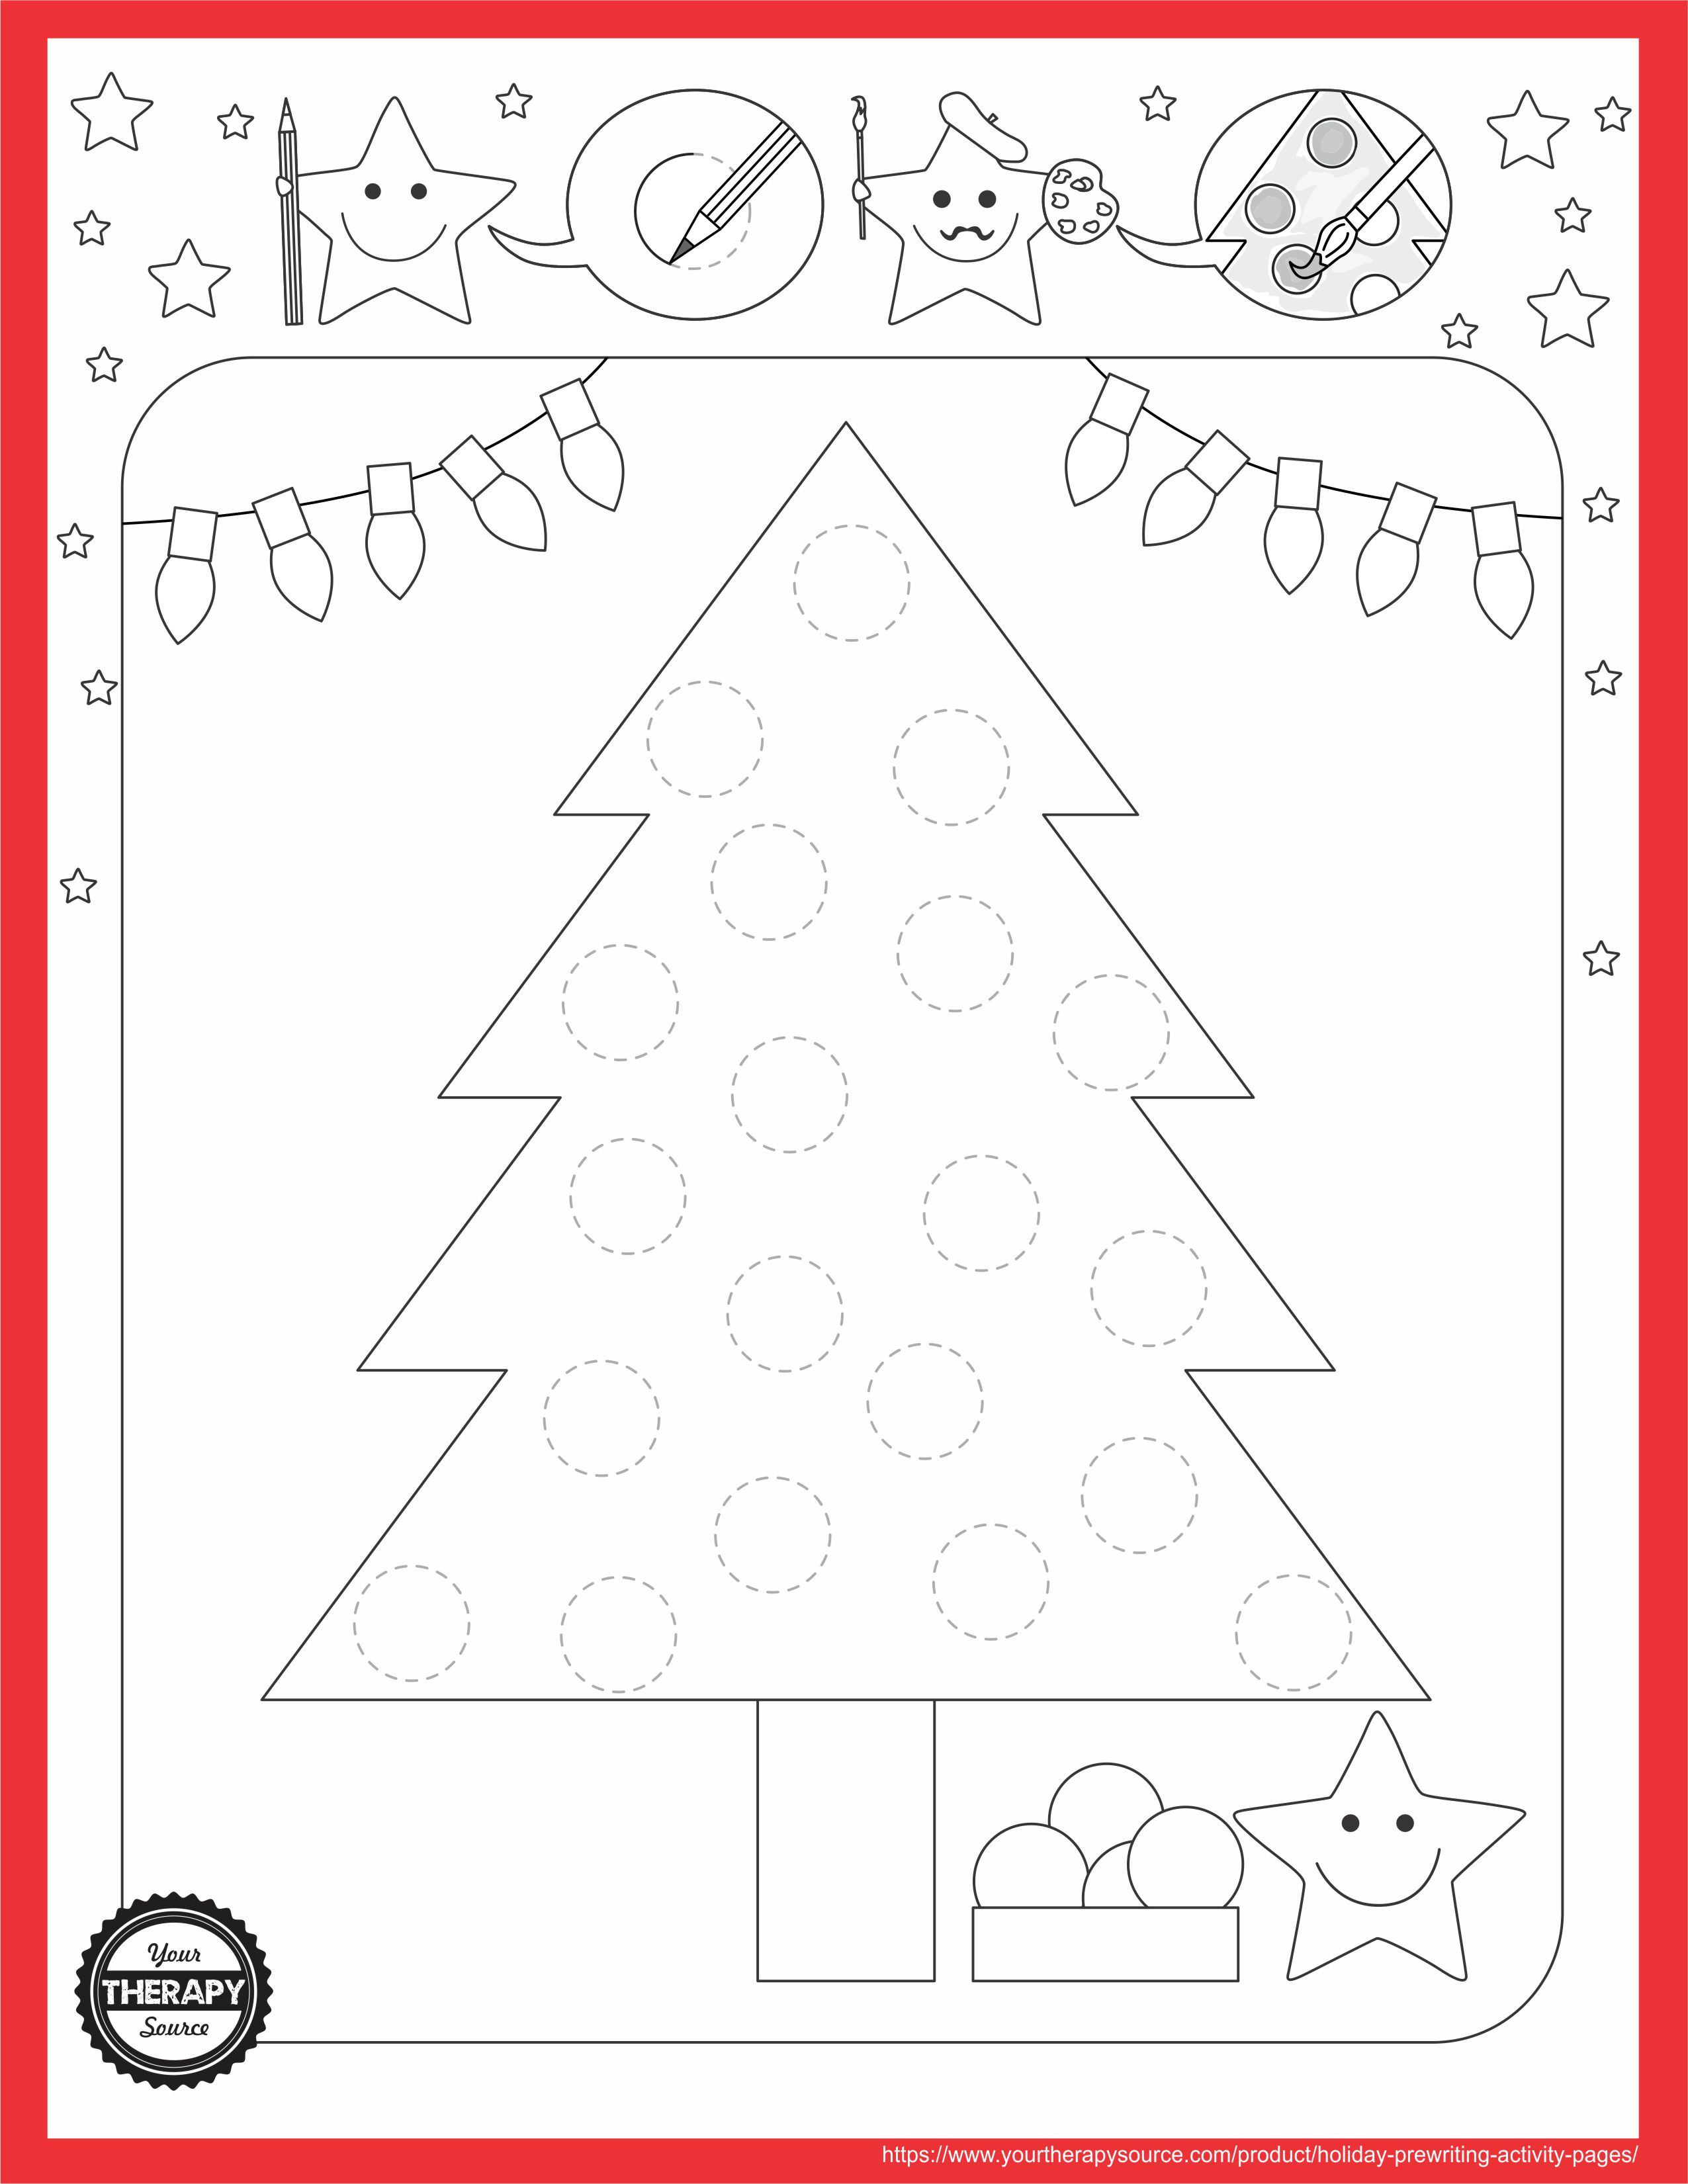 Holiday Tree Prewriting Activity Page - Your Therapy Source